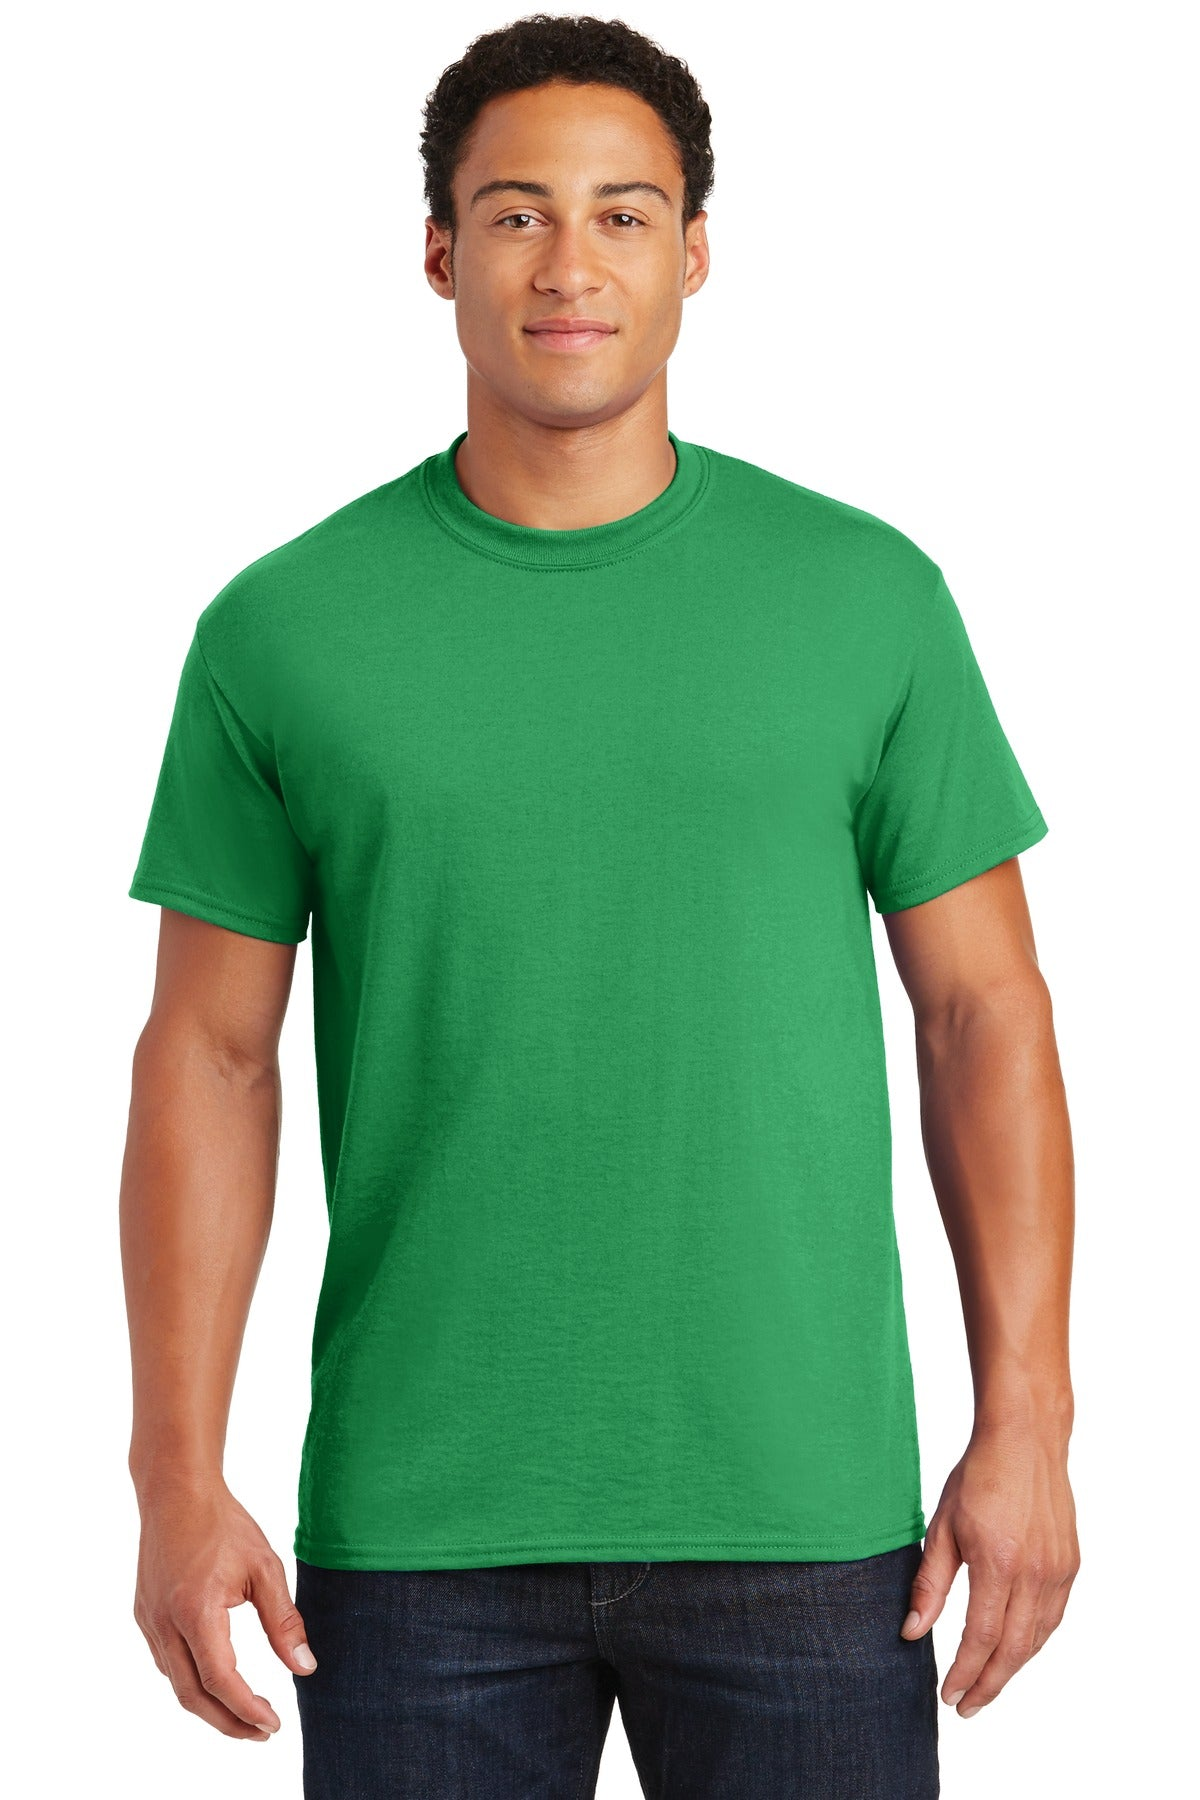 Irish Green Gildan DryBlend 50 Cotton/50 Poly T-Shirt.